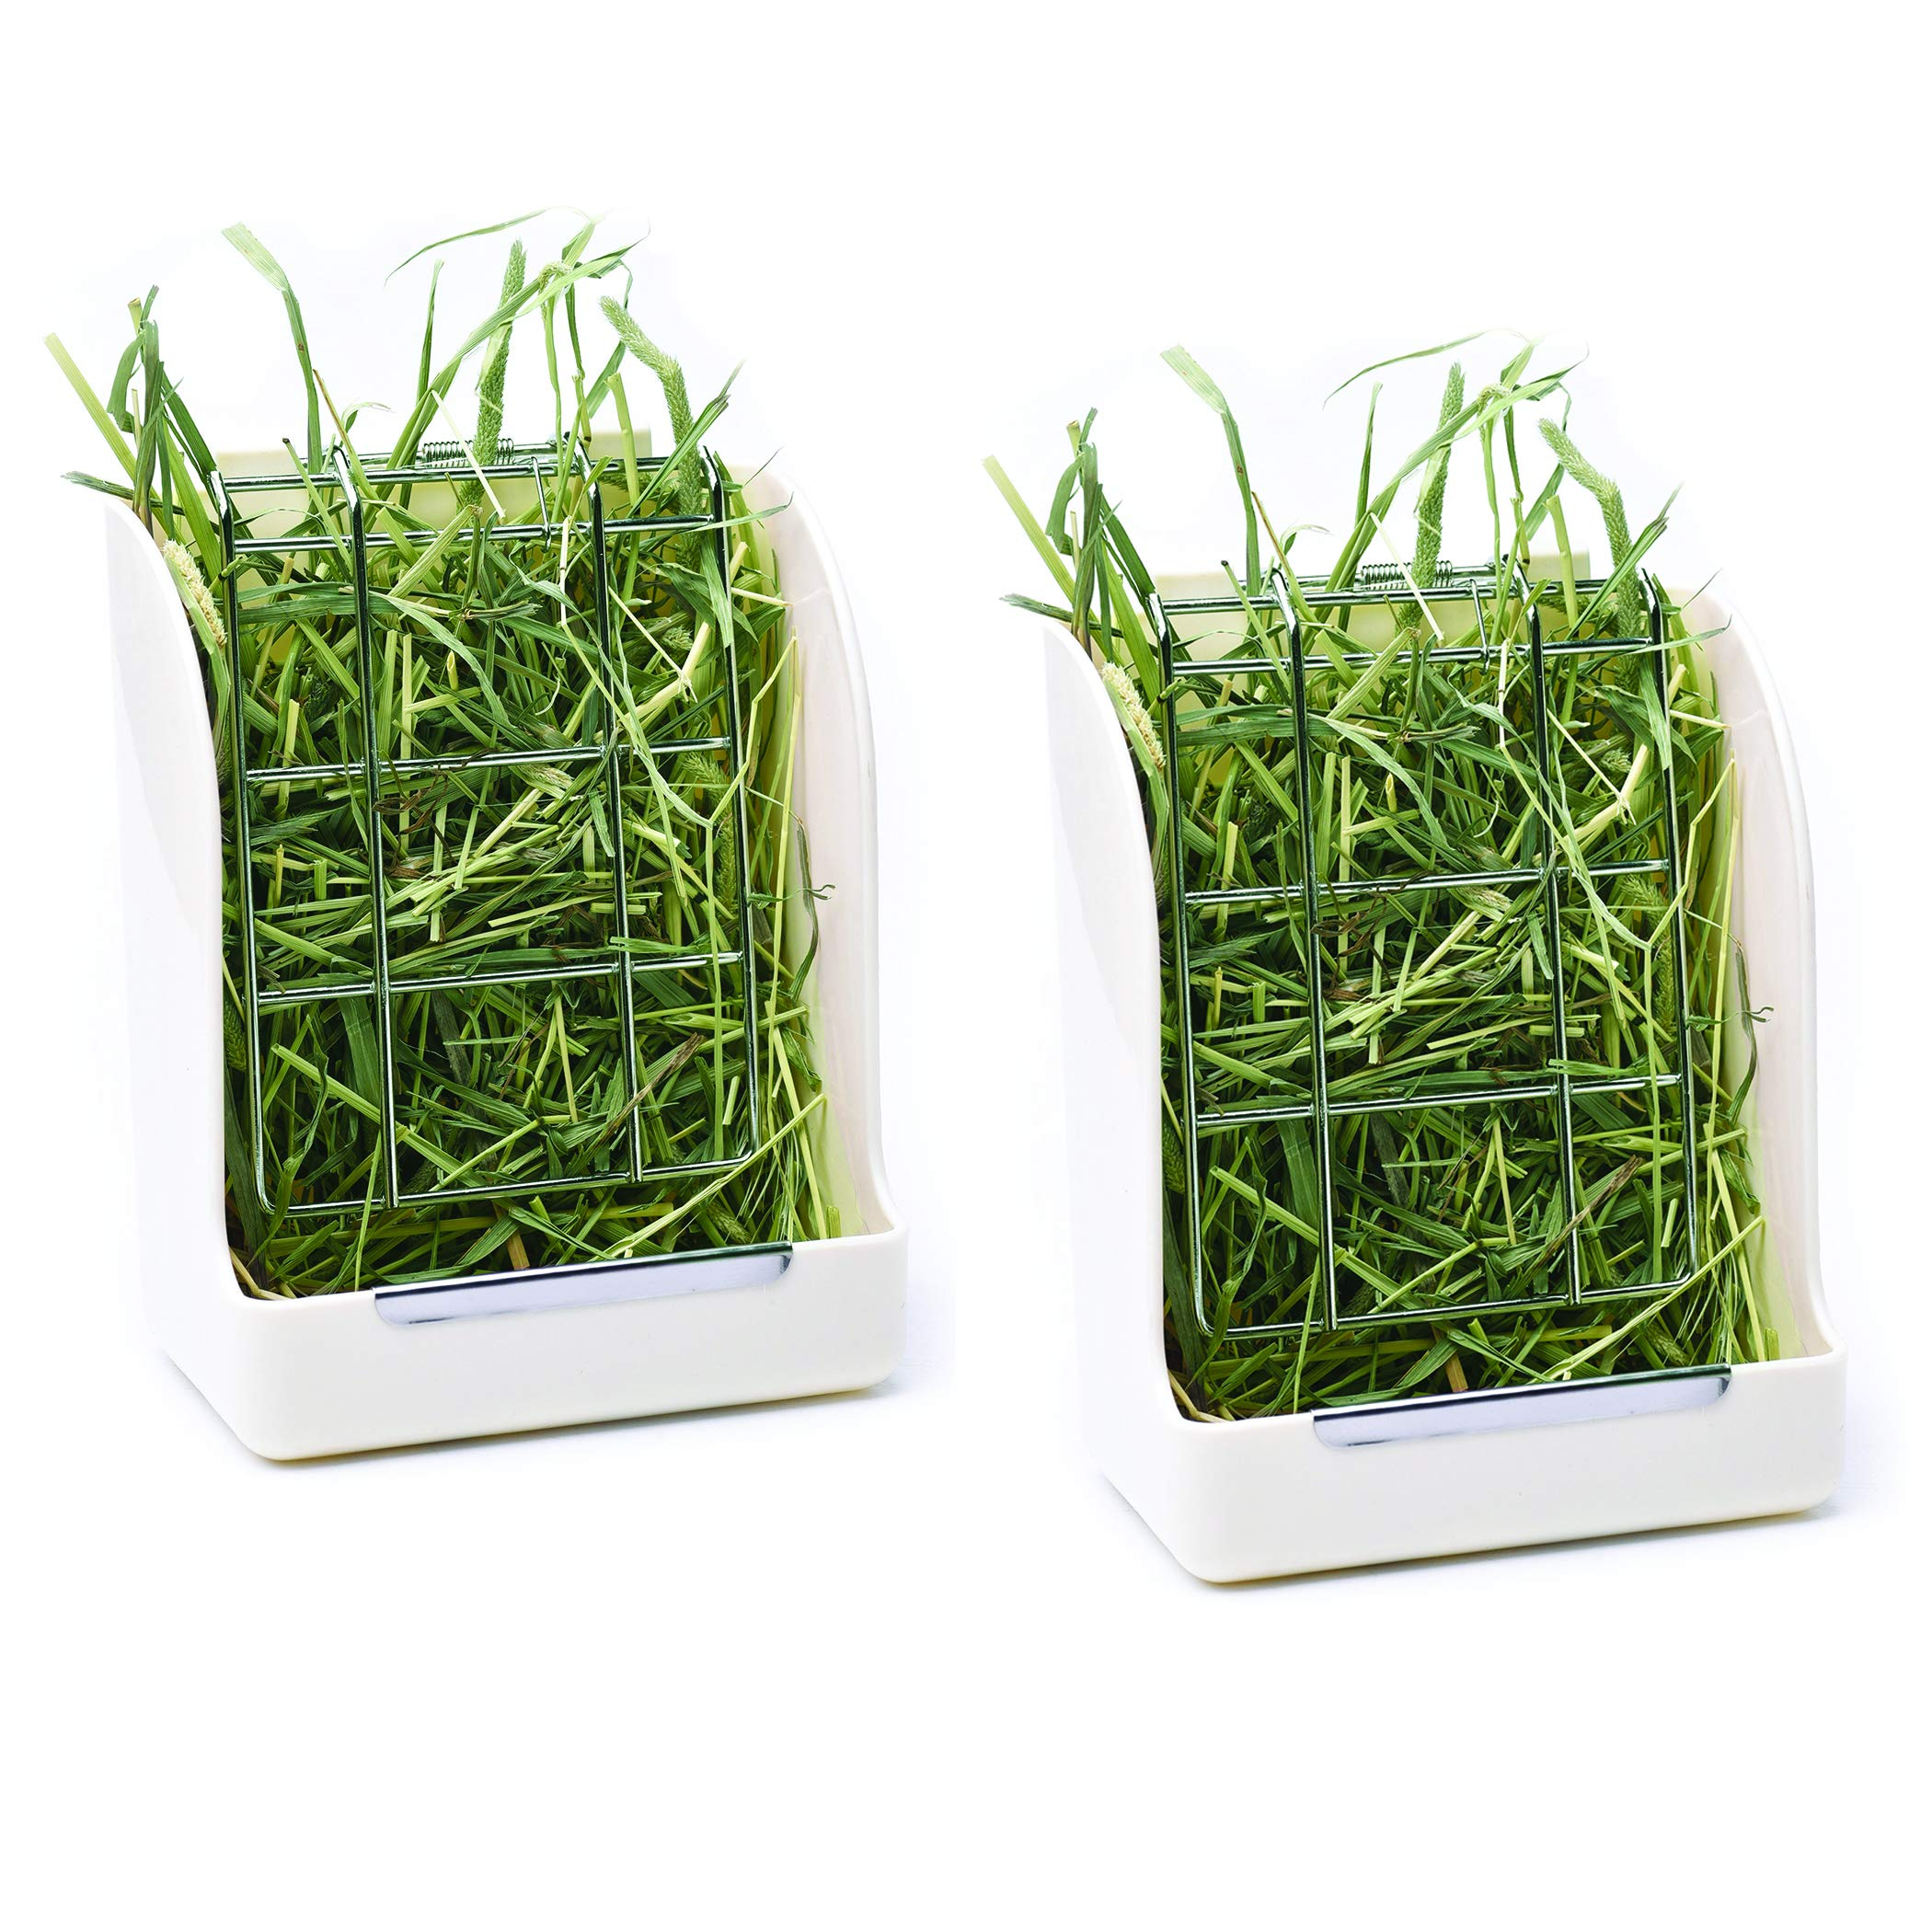 CalPalmy (2-Pack) Hay Feeder/Rack - Ideal for Rabbit/ChinChilla/Guinea Pig - Keeps Grass Clean & Fresh/Non-Toxic, BPA Free Plastic/Minimizing Waste/Mess